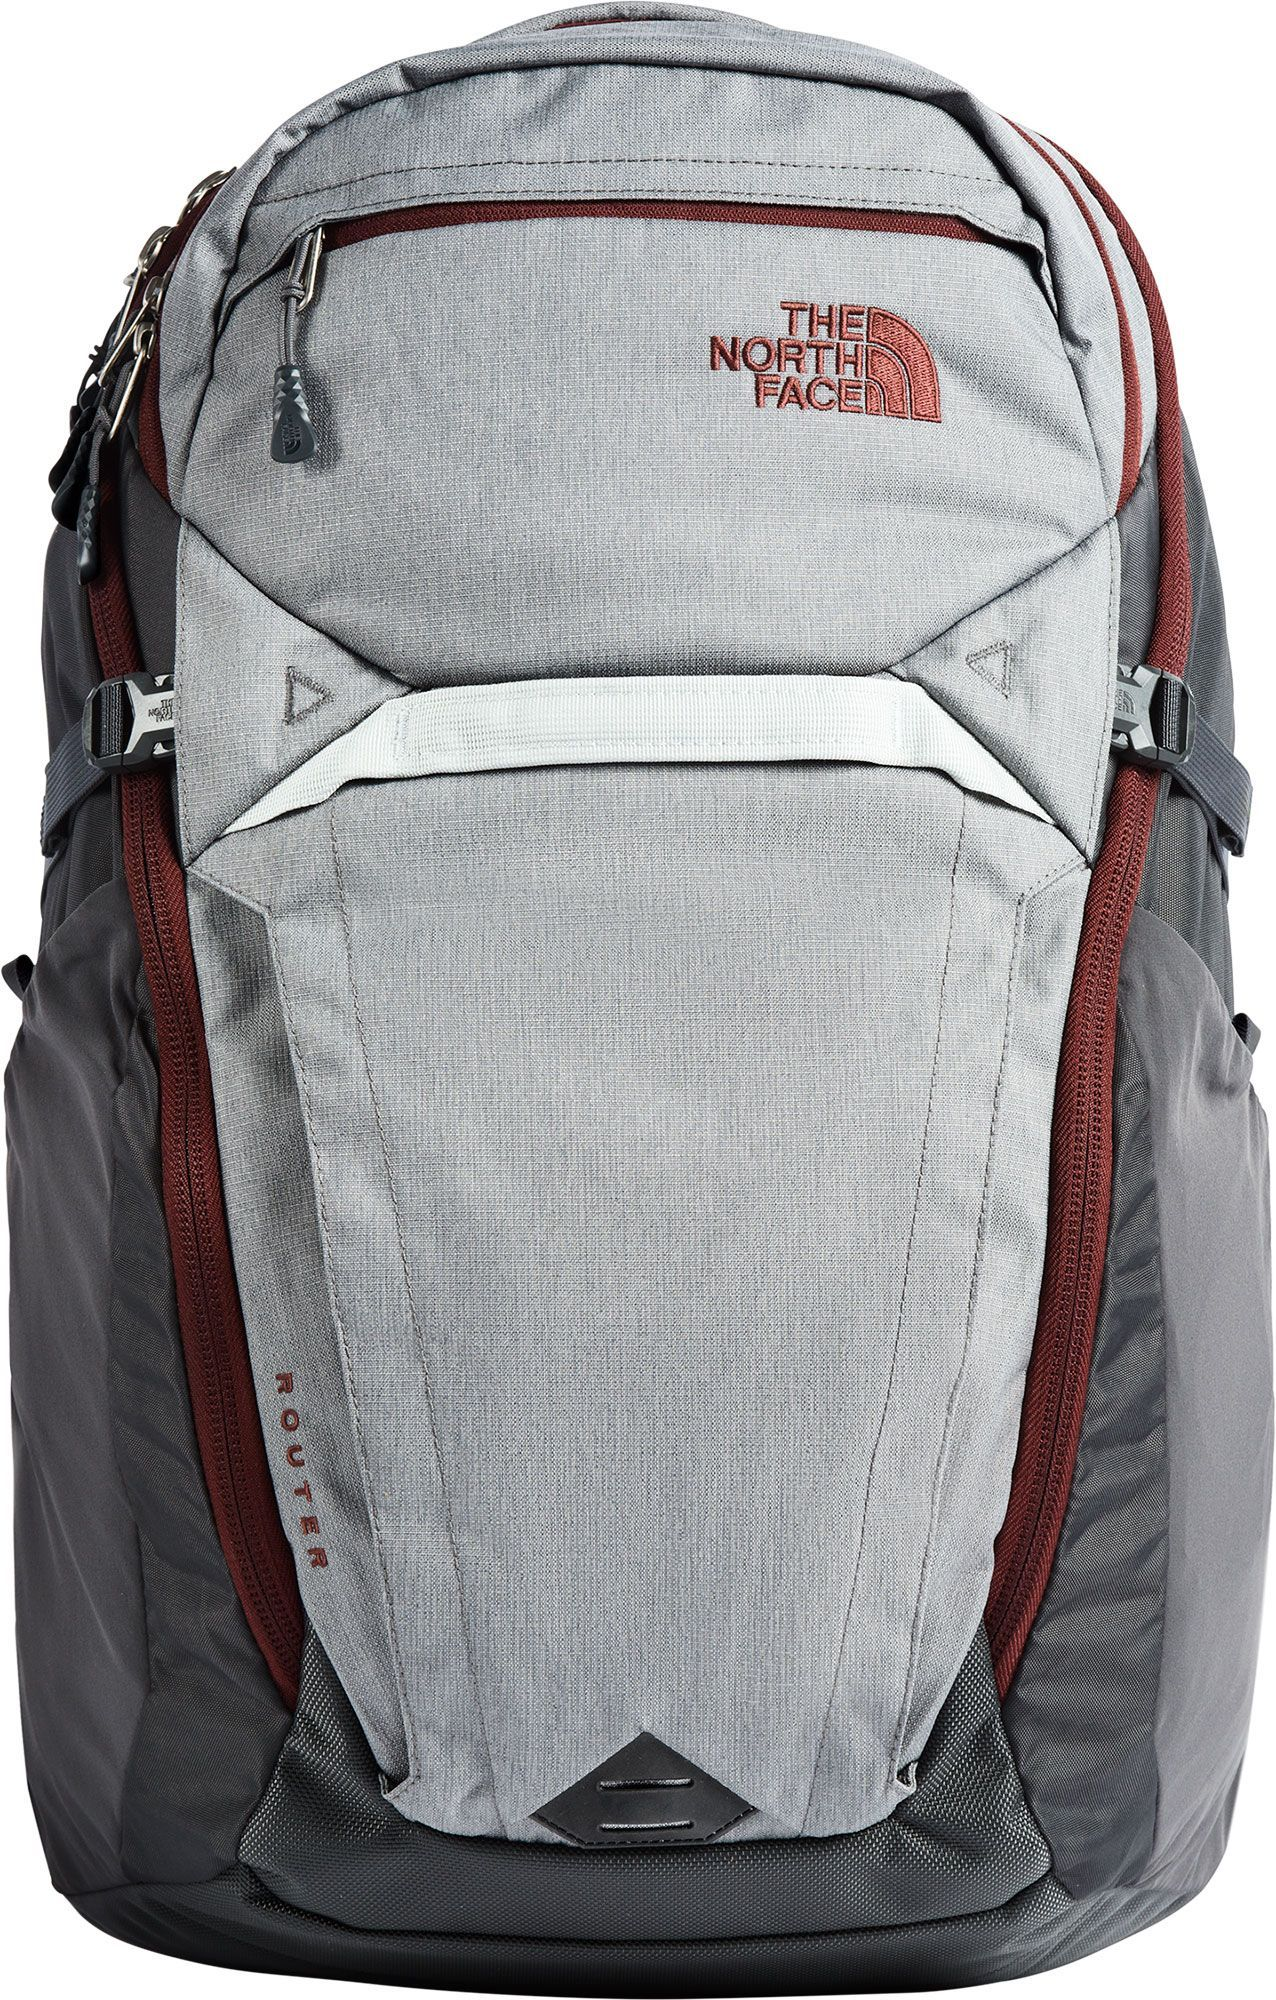 ee9101db4 The North Face Men's Router 18 Backpack | Products | 40l backpack ...